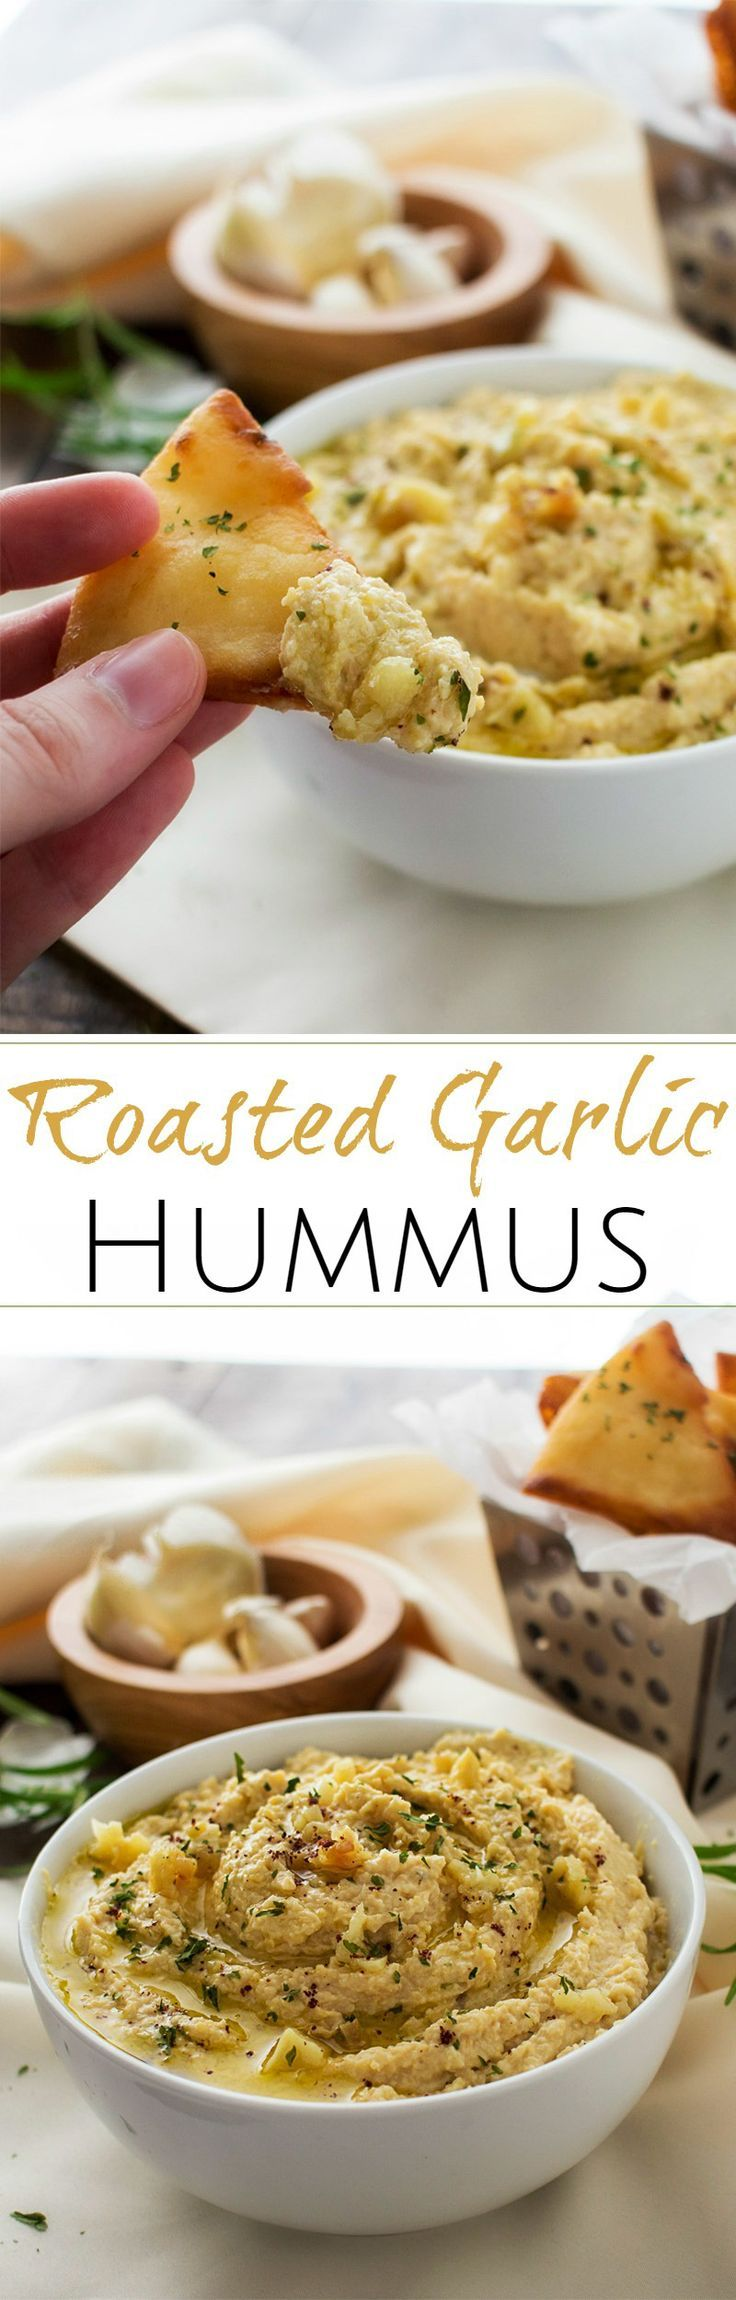 Roasted Garlic Hummus | The Chunky Chef | Creamy, rich hummus with a ...